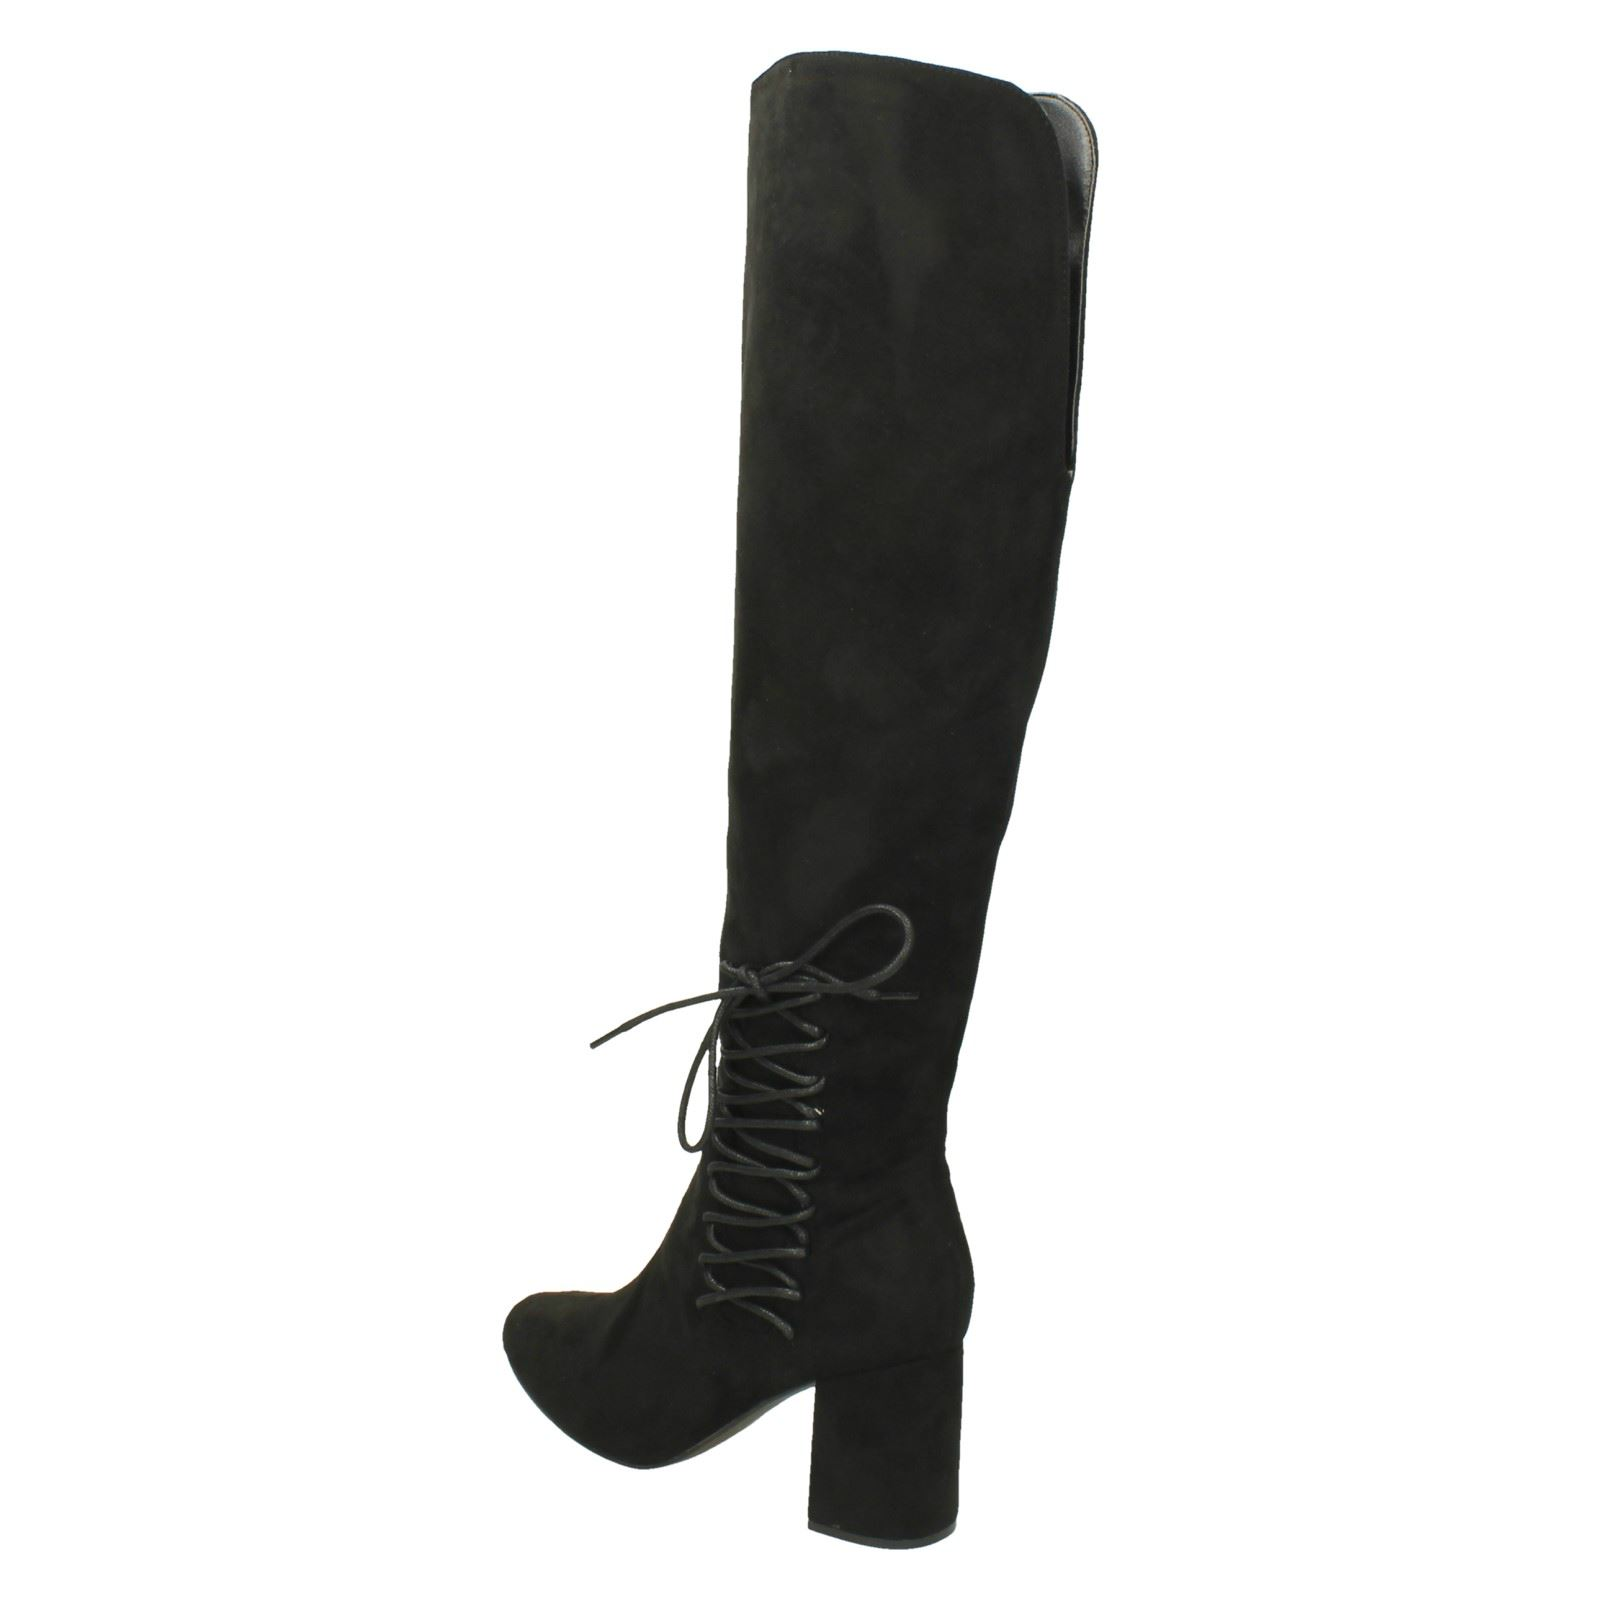 Olb787 Knee The Ladies High Style Dolcis Emrma Black Boots wxAwHqF7B